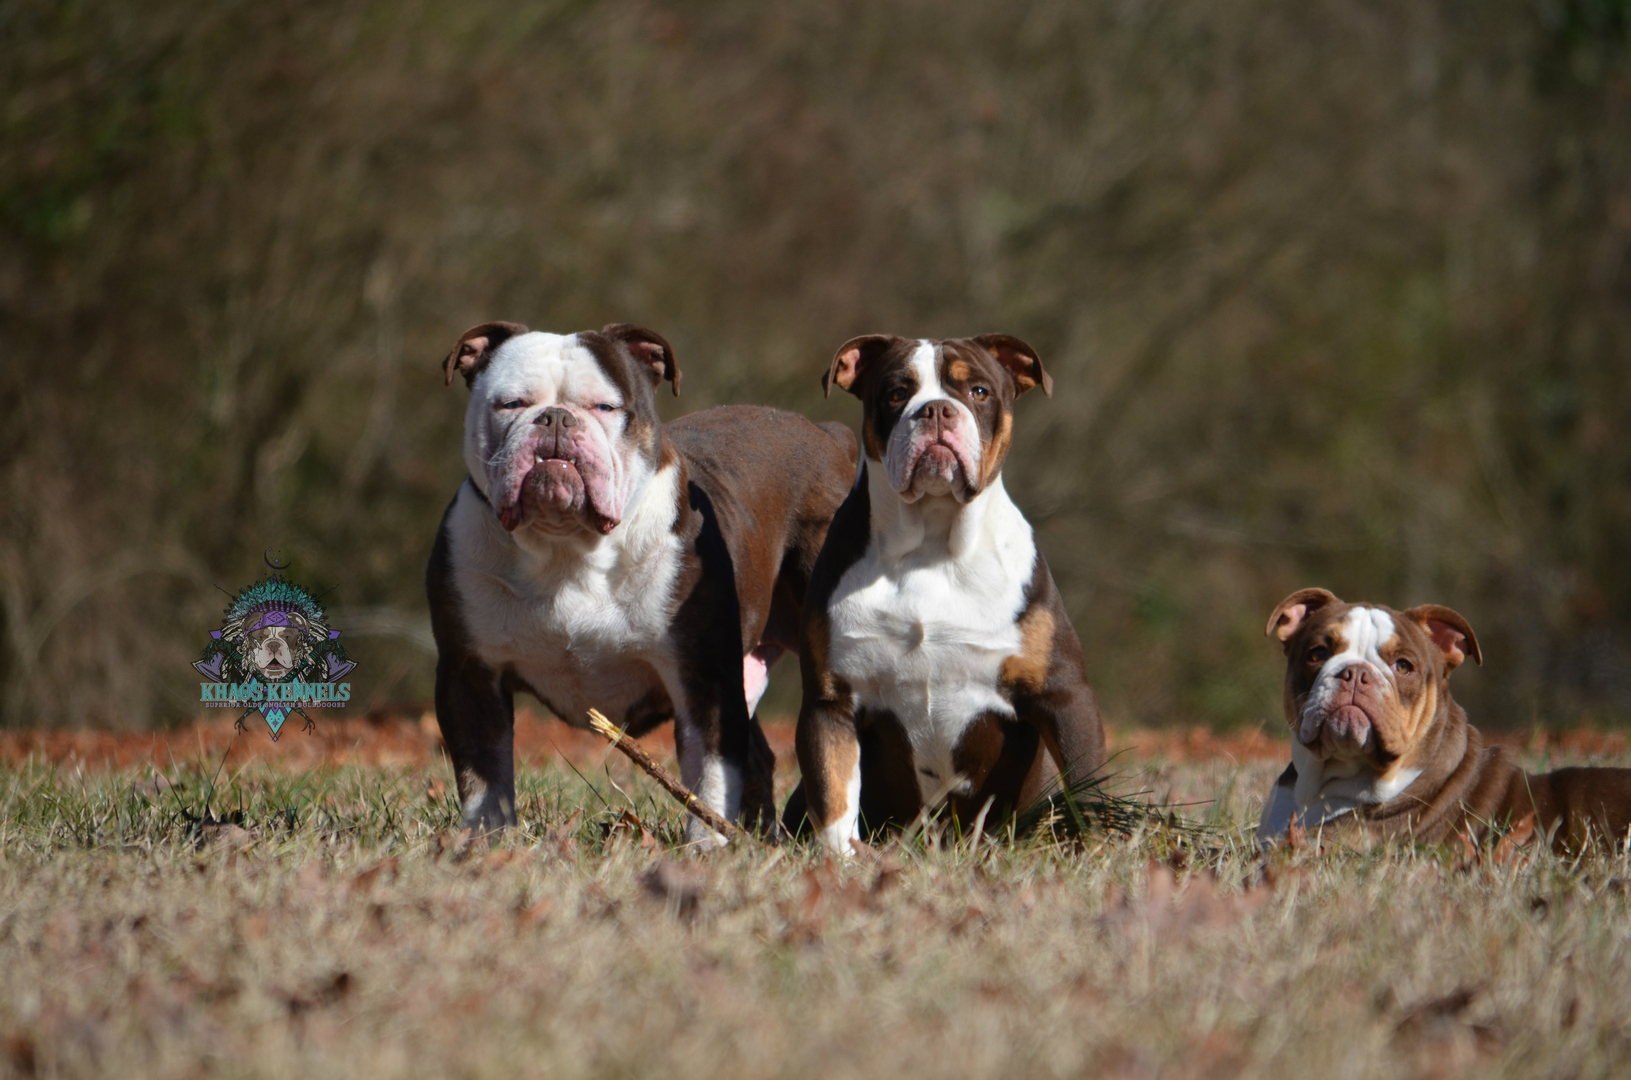 KHAOS KENNELS - Kennel, Superior Olde English Bulldogges